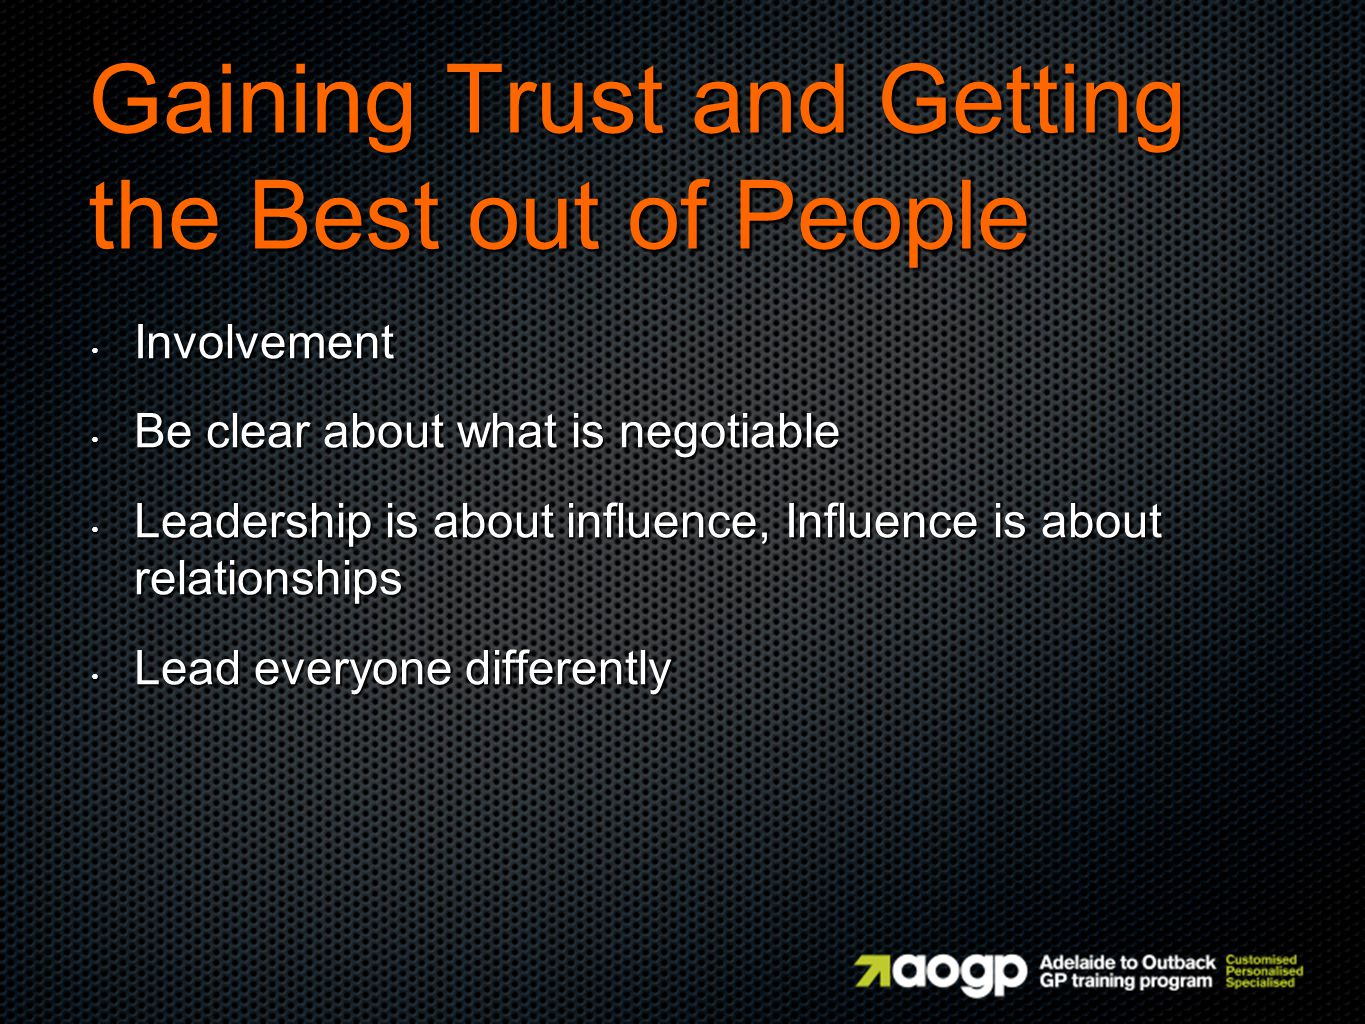 Gaining Trust and Getting the Best out of People Involvement Involvement Be clear about what is negotiable Be clear about what is negotiable Leadership is about influence, Influence is about relationships Leadership is about influence, Influence is about relationships Lead everyone differently Lead everyone differently